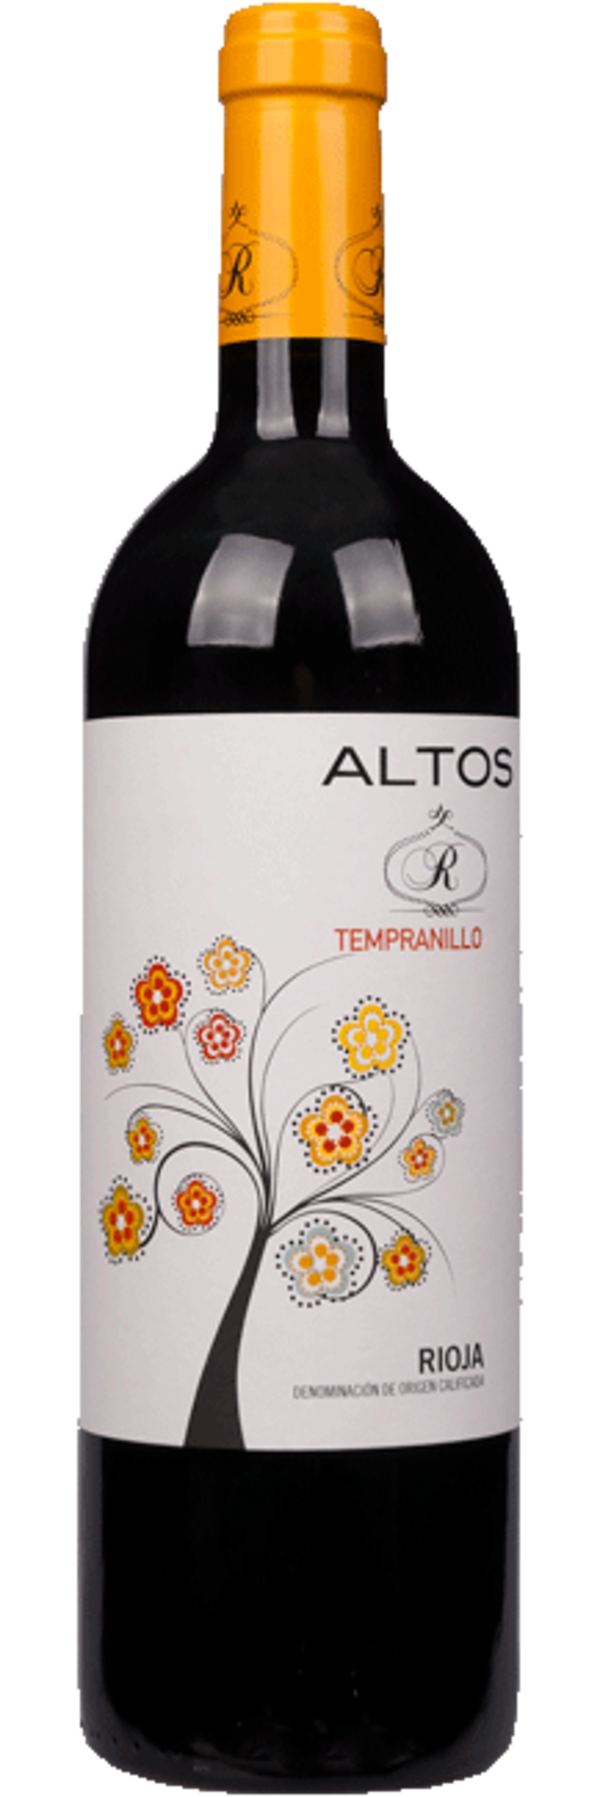 Altos R Tempranillo Oak Aged 2016